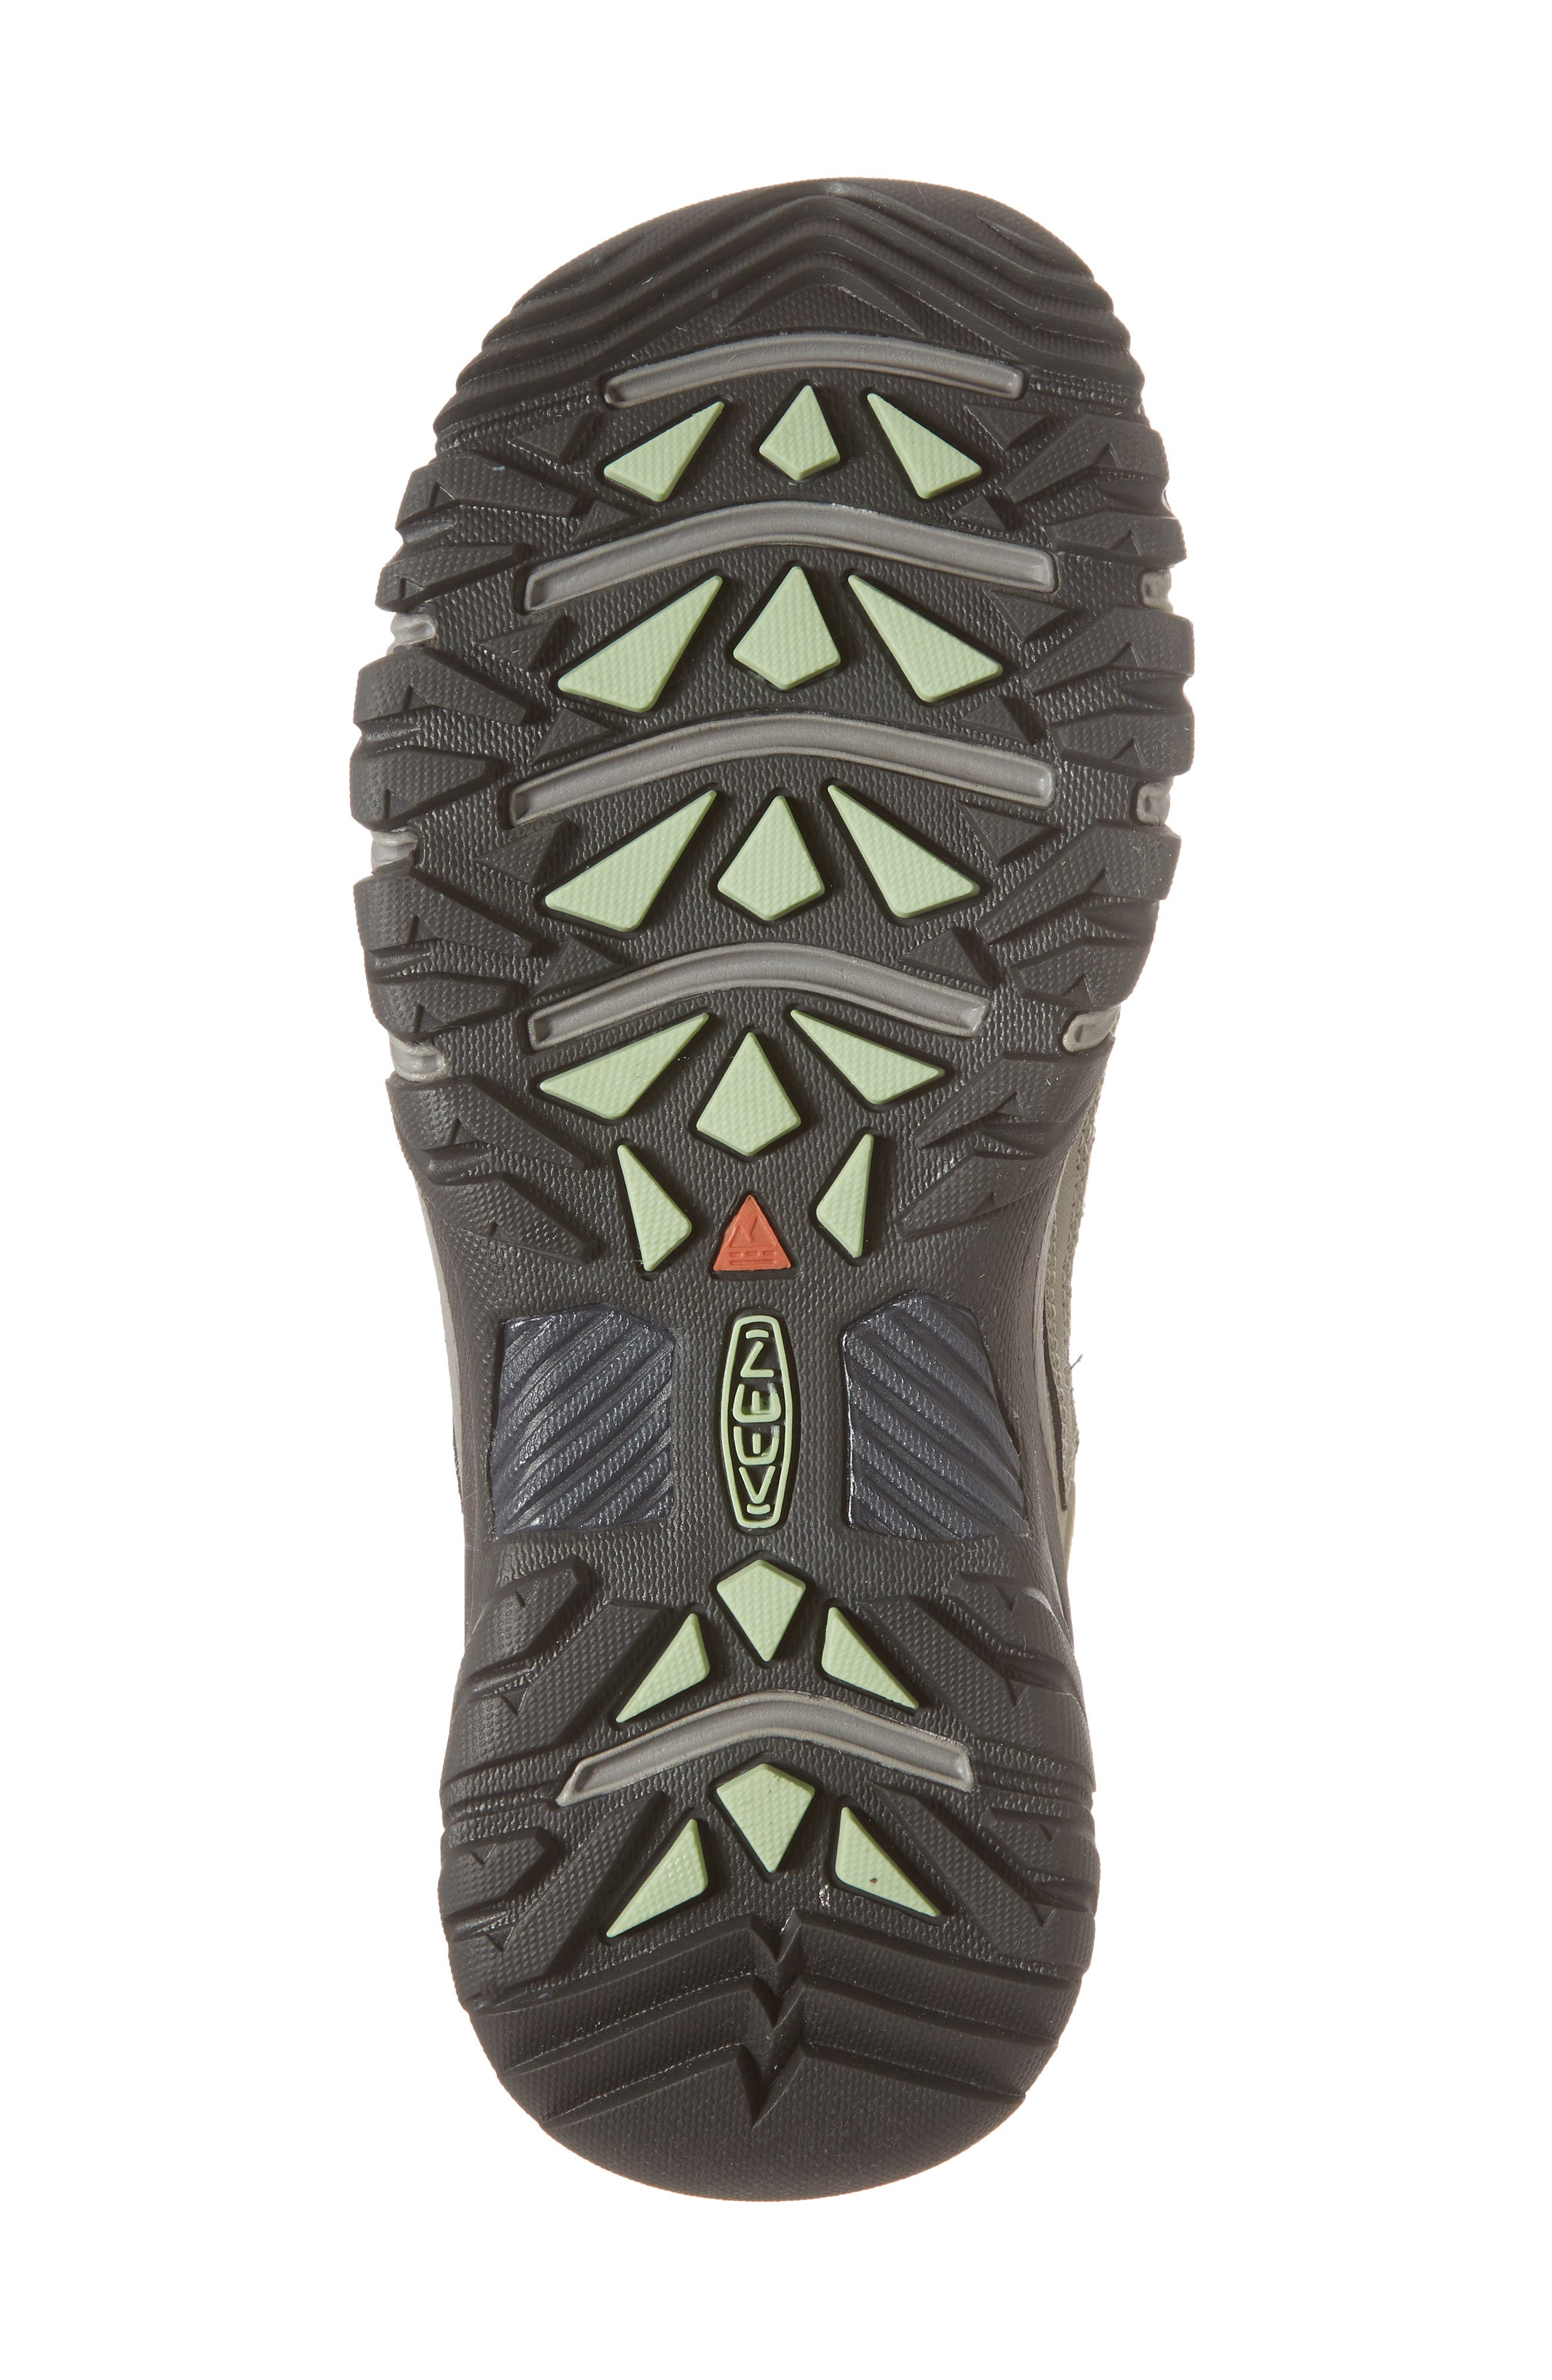 Targhee Vent Mid Hiking Shoe,                             Alternate thumbnail 6, color,                             Fumo/ Quiet Green Leather